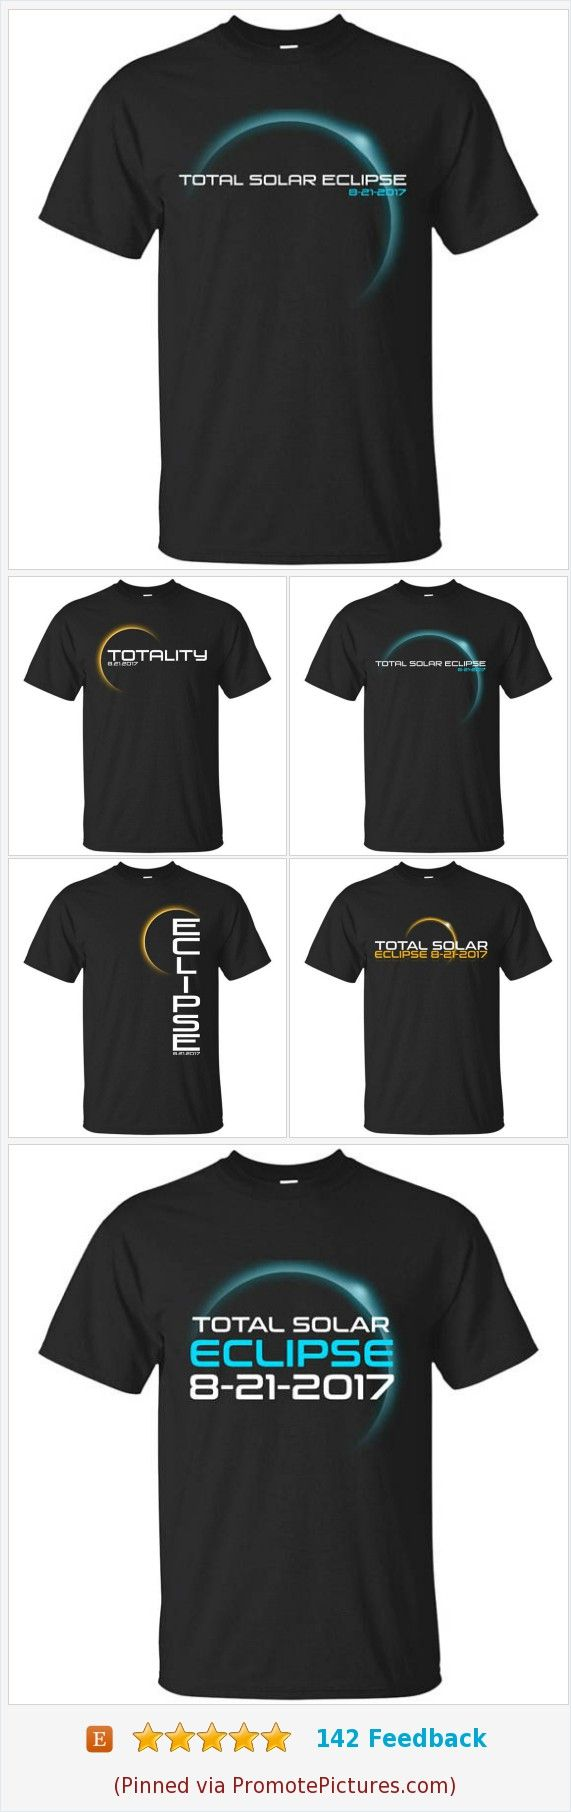 Total Solar Eclipse T-Shirts and Tank Tops - Solar Eclipse 8-21-2017 https://www.etsy.com/shop/CaliKays?ref=seller-platform-mcnav&search_query=eclipse  (Pinned using https://PromotePictures.com)